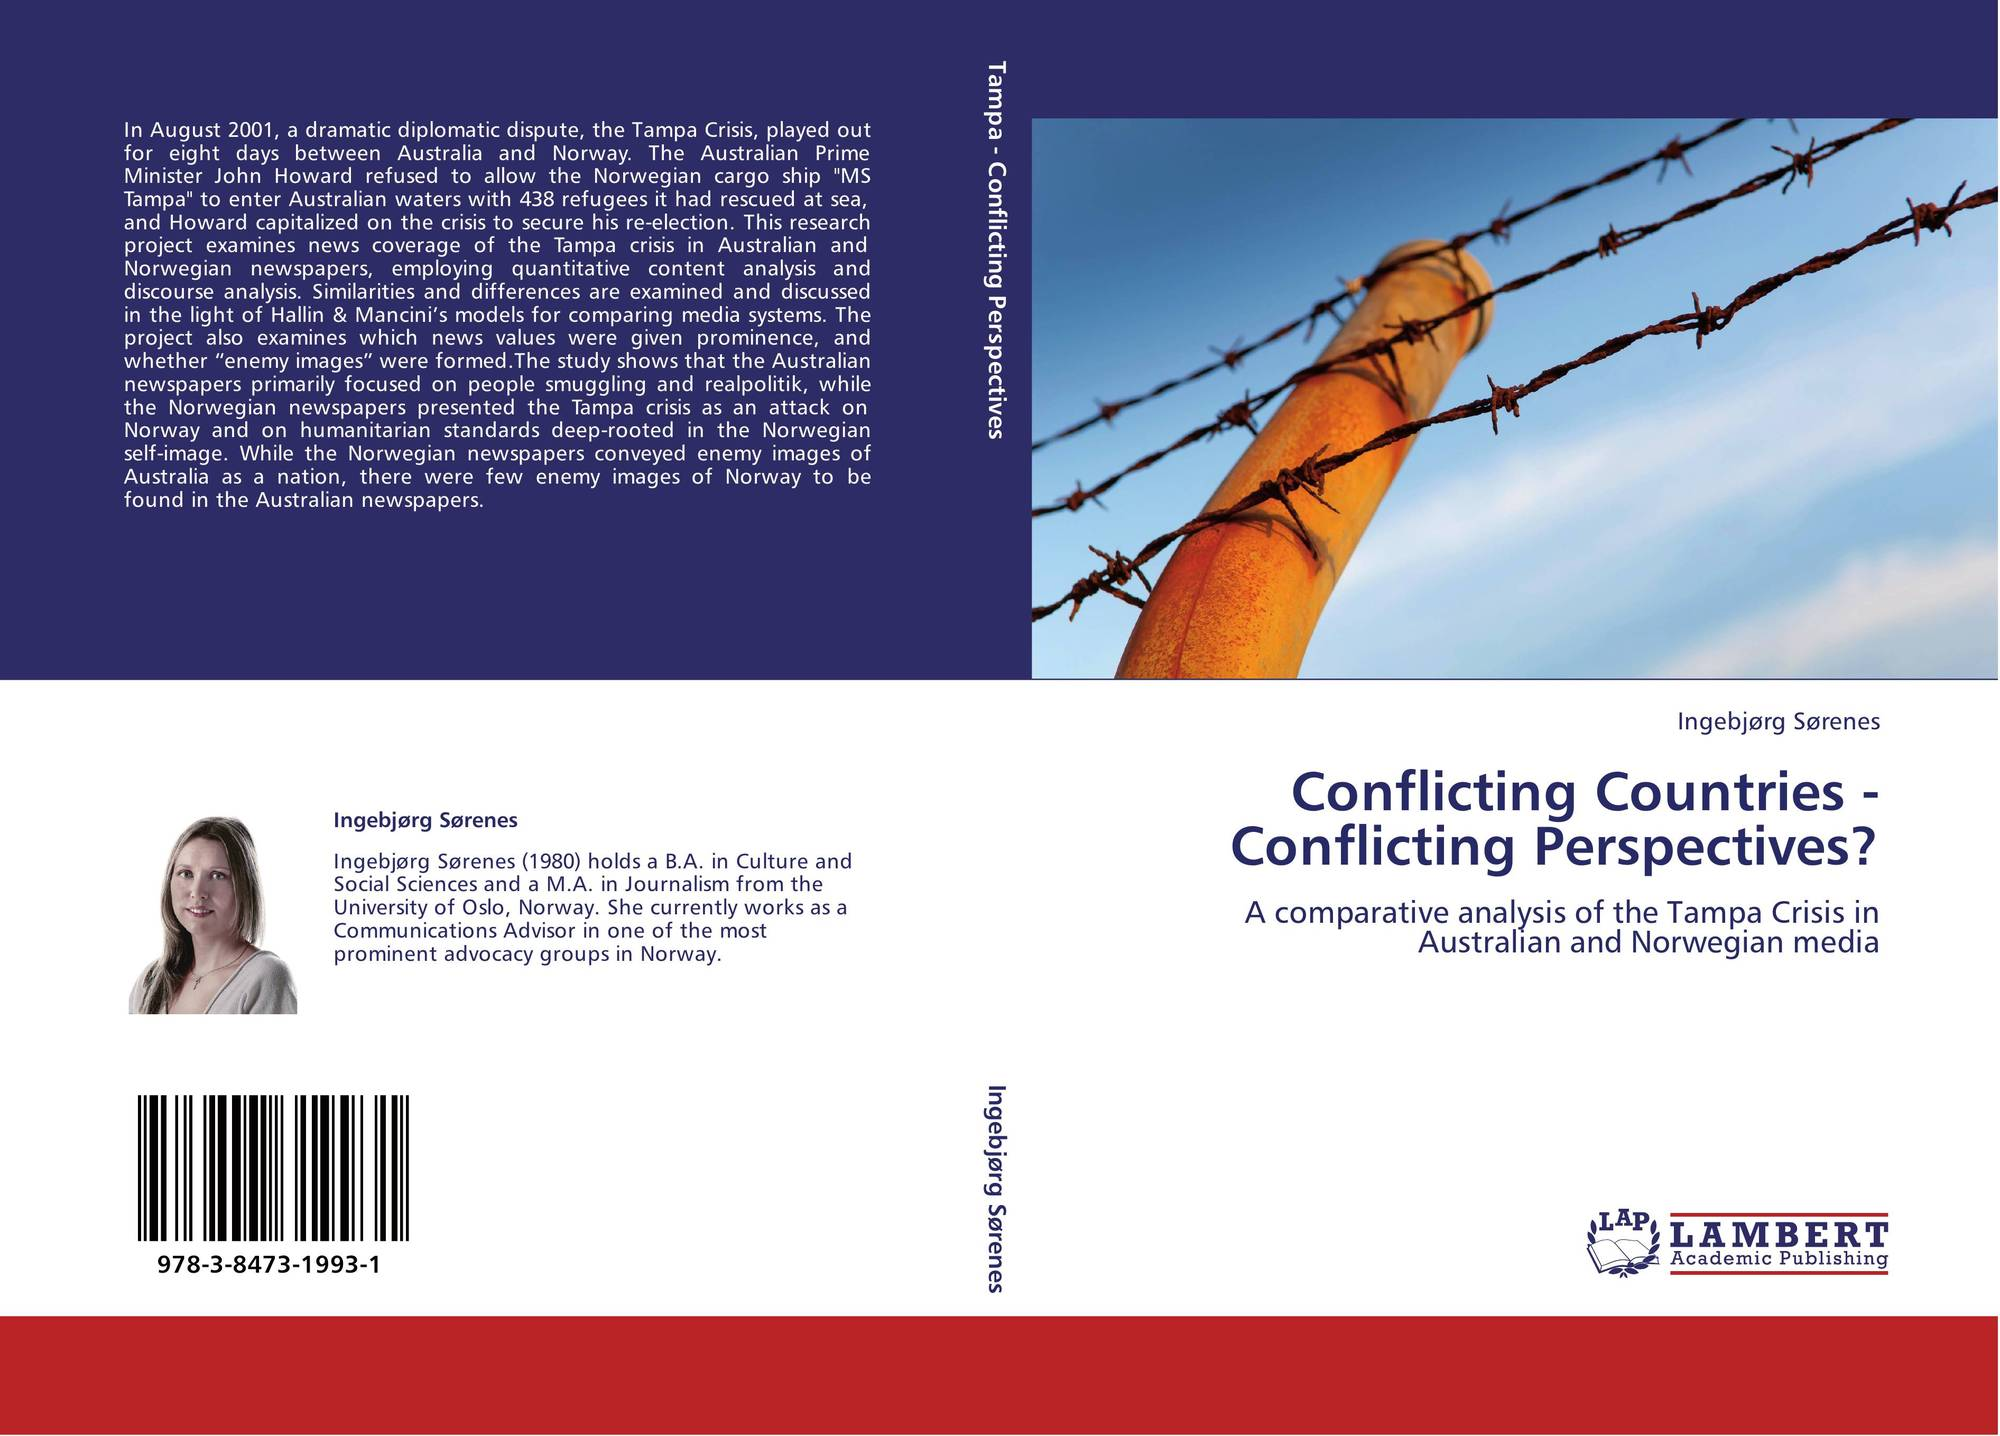 conflicting perspectives bias and self Perspectives and to solve problems cooperatively and creatively - critical thinking skills and the ability to recognize bias and injustice - the commitment and ability to act against bias and injustice individually.